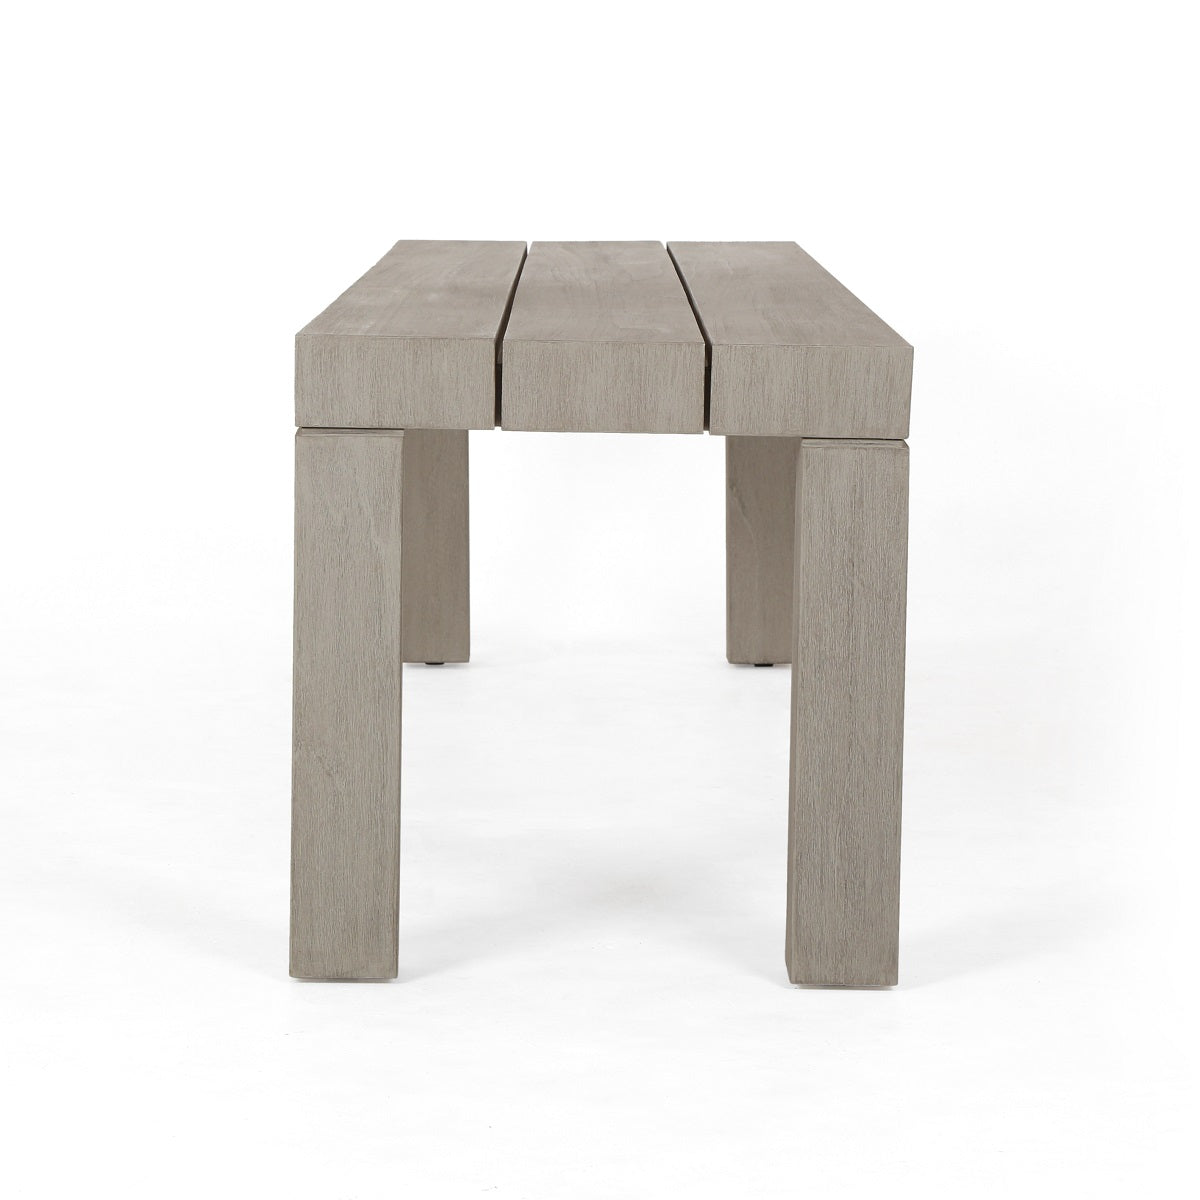 Picture of: Sonora Outdoor Teak Wood Dining Bench The Design Tap